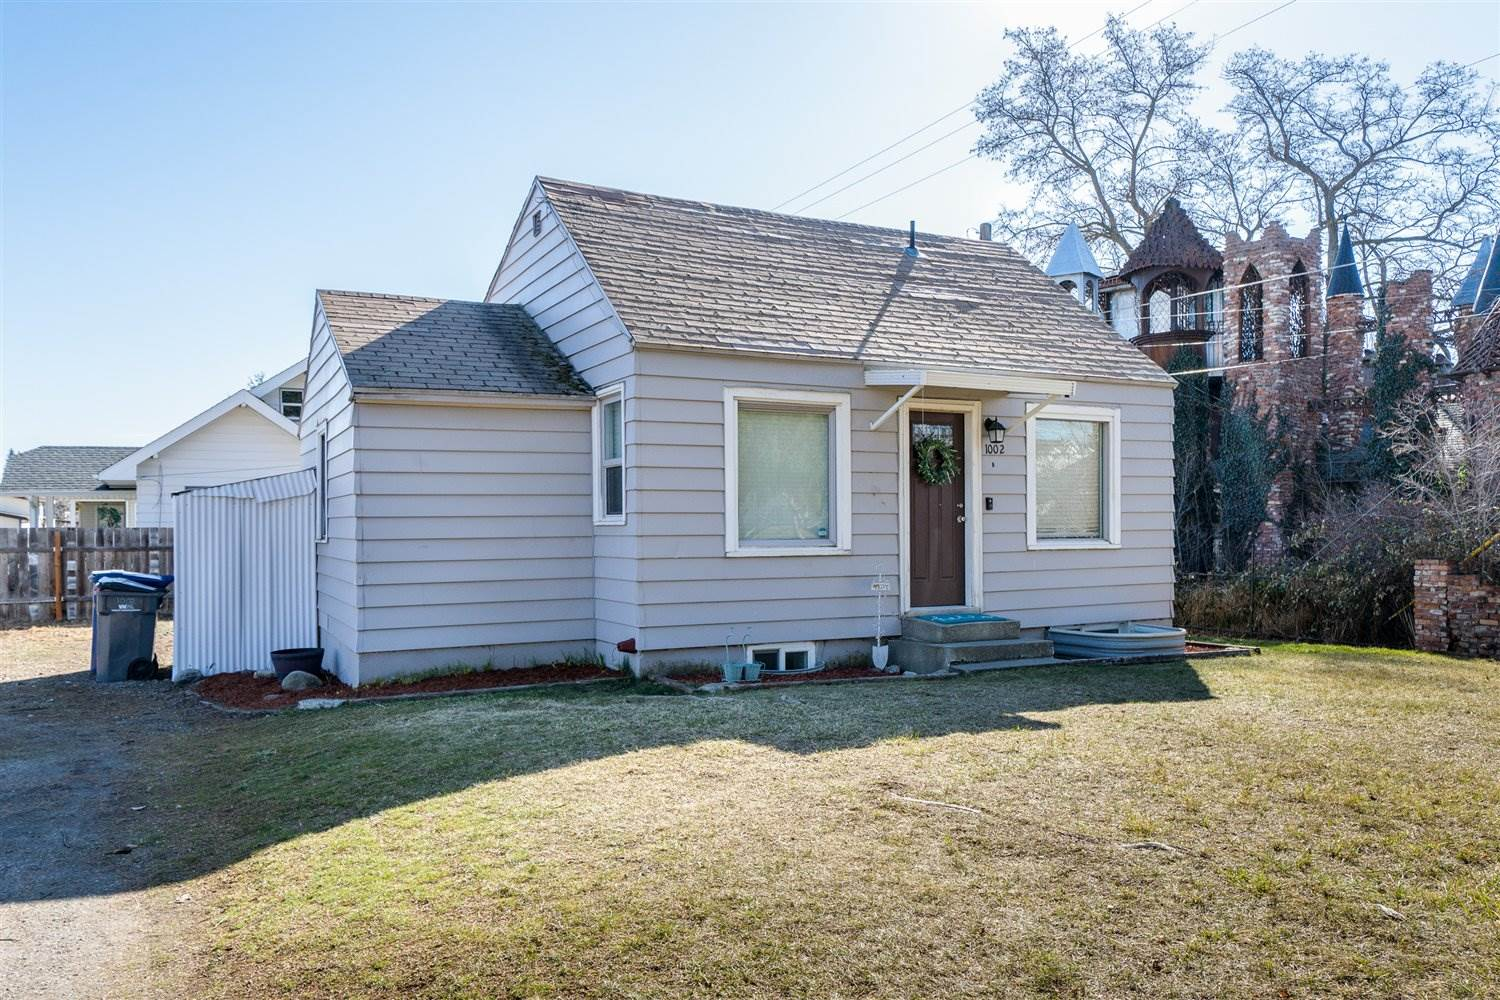 Beautiful bungalow that has been very well maintained 2 bedrooms wonderful kitchen plenty of updates Throughout this adorable home. The work has  been done here nothing to do but move in and enjoy. Full basement with egress window. This diamond is a spectacular find hurry before it's gone.